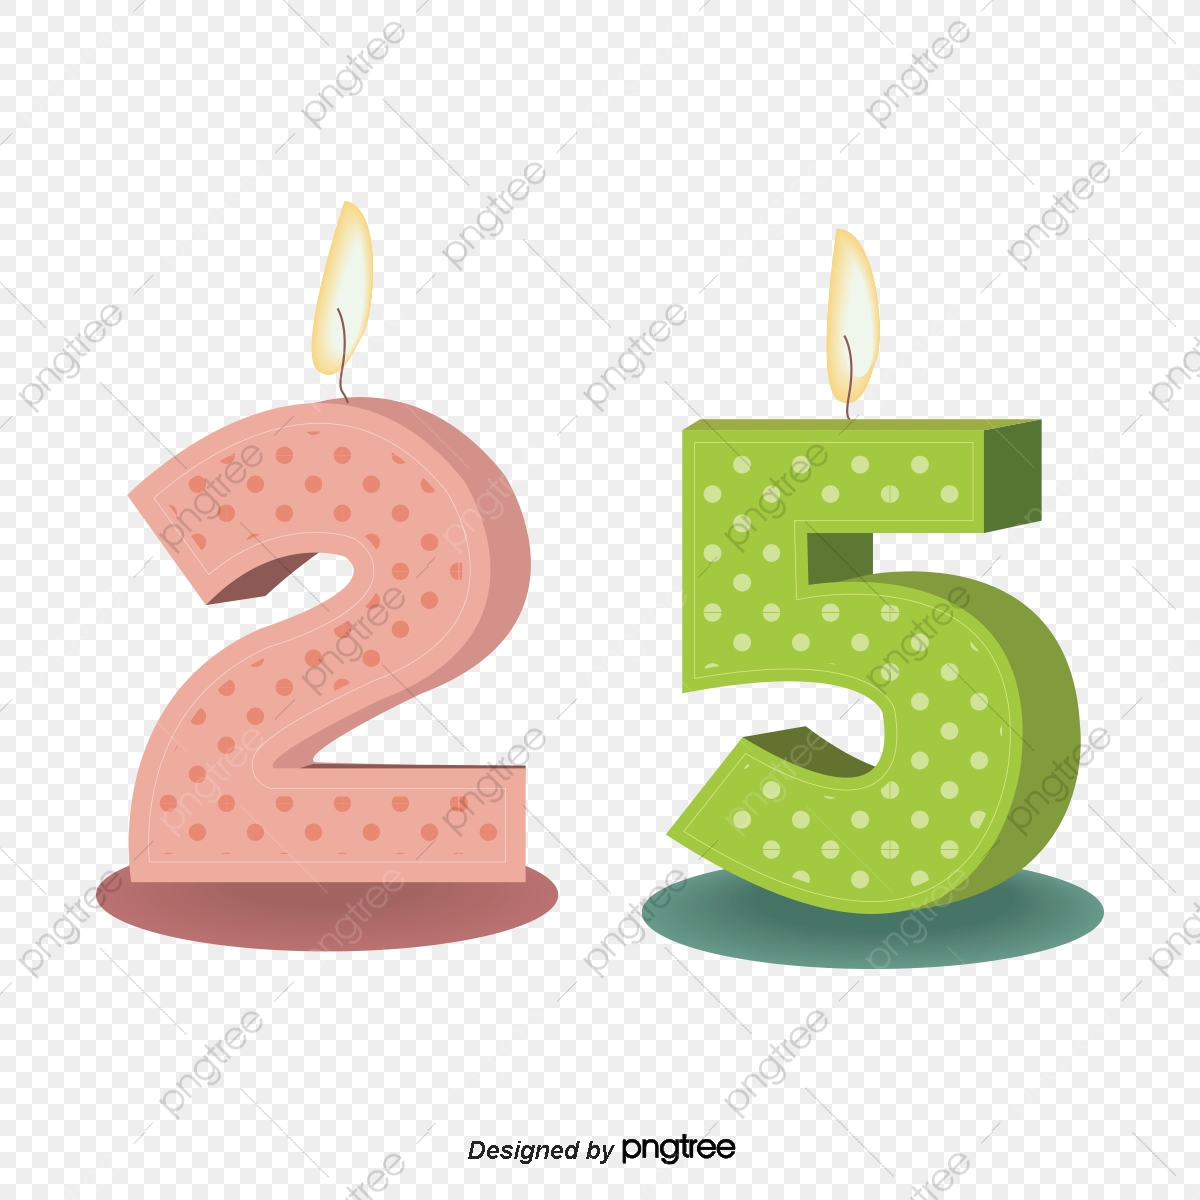 25 Number PNG Royalty-Free | PNG Play